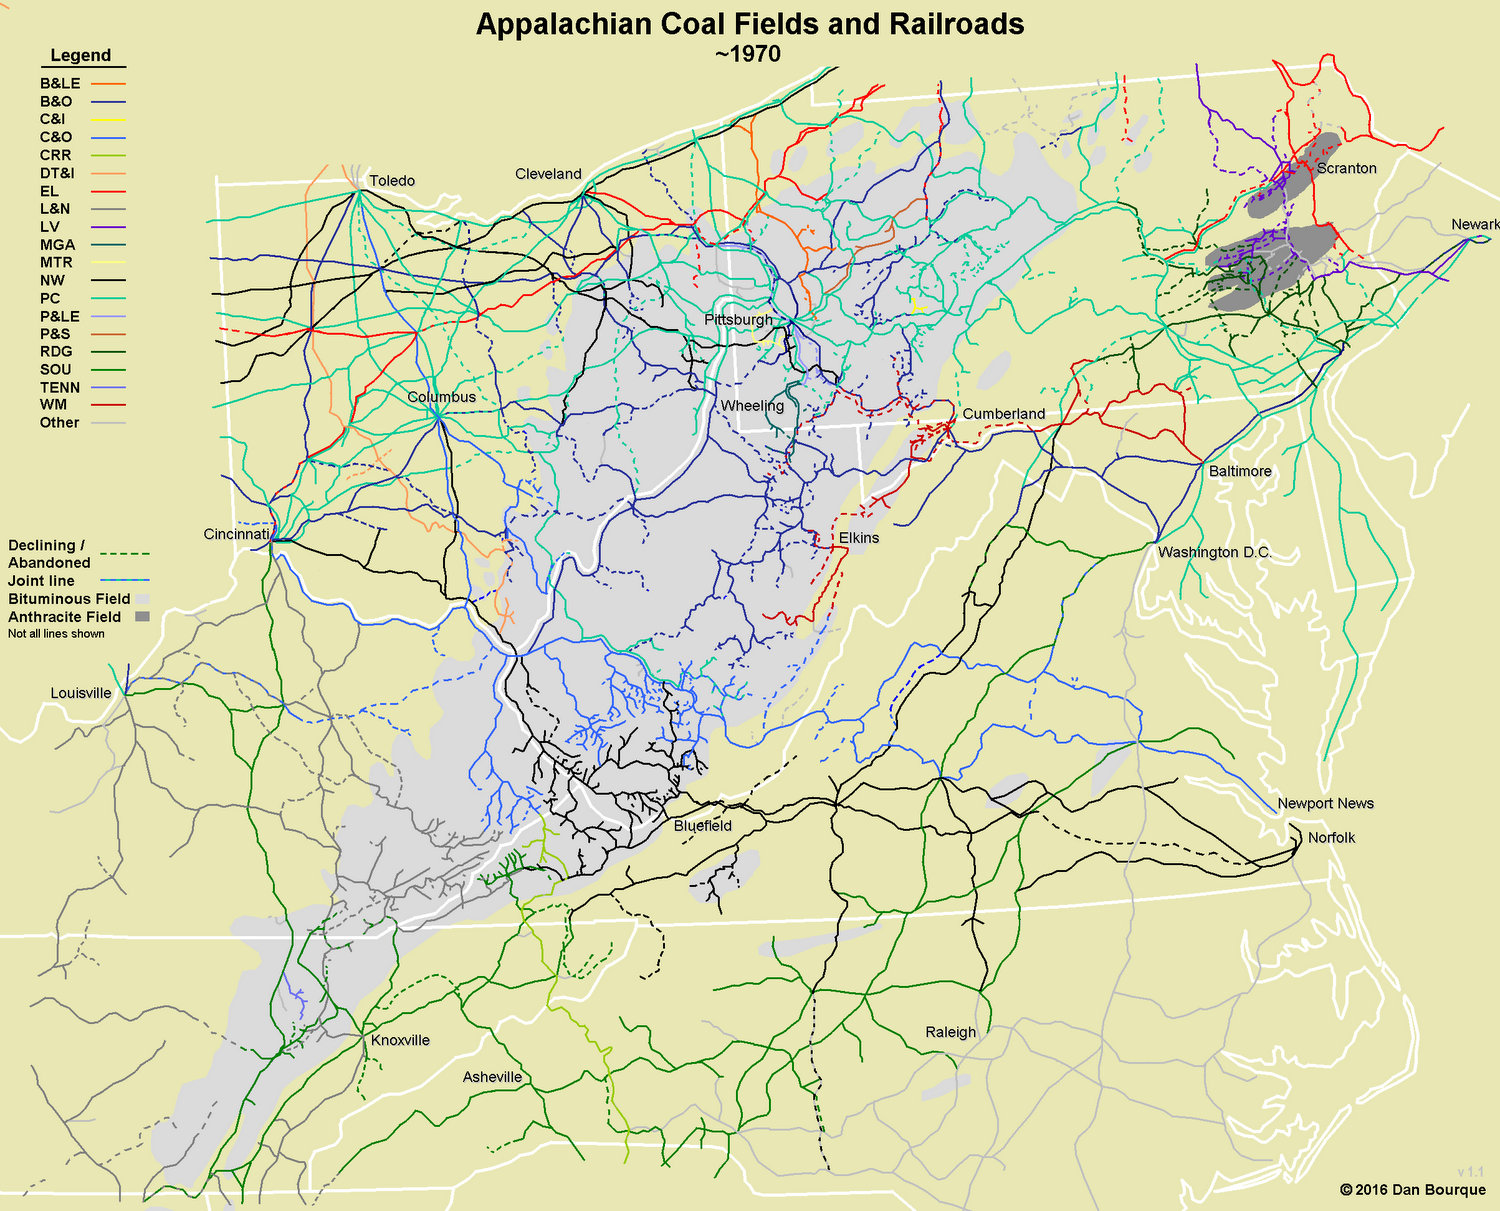 Map of Appalachian Railroads circa 1970